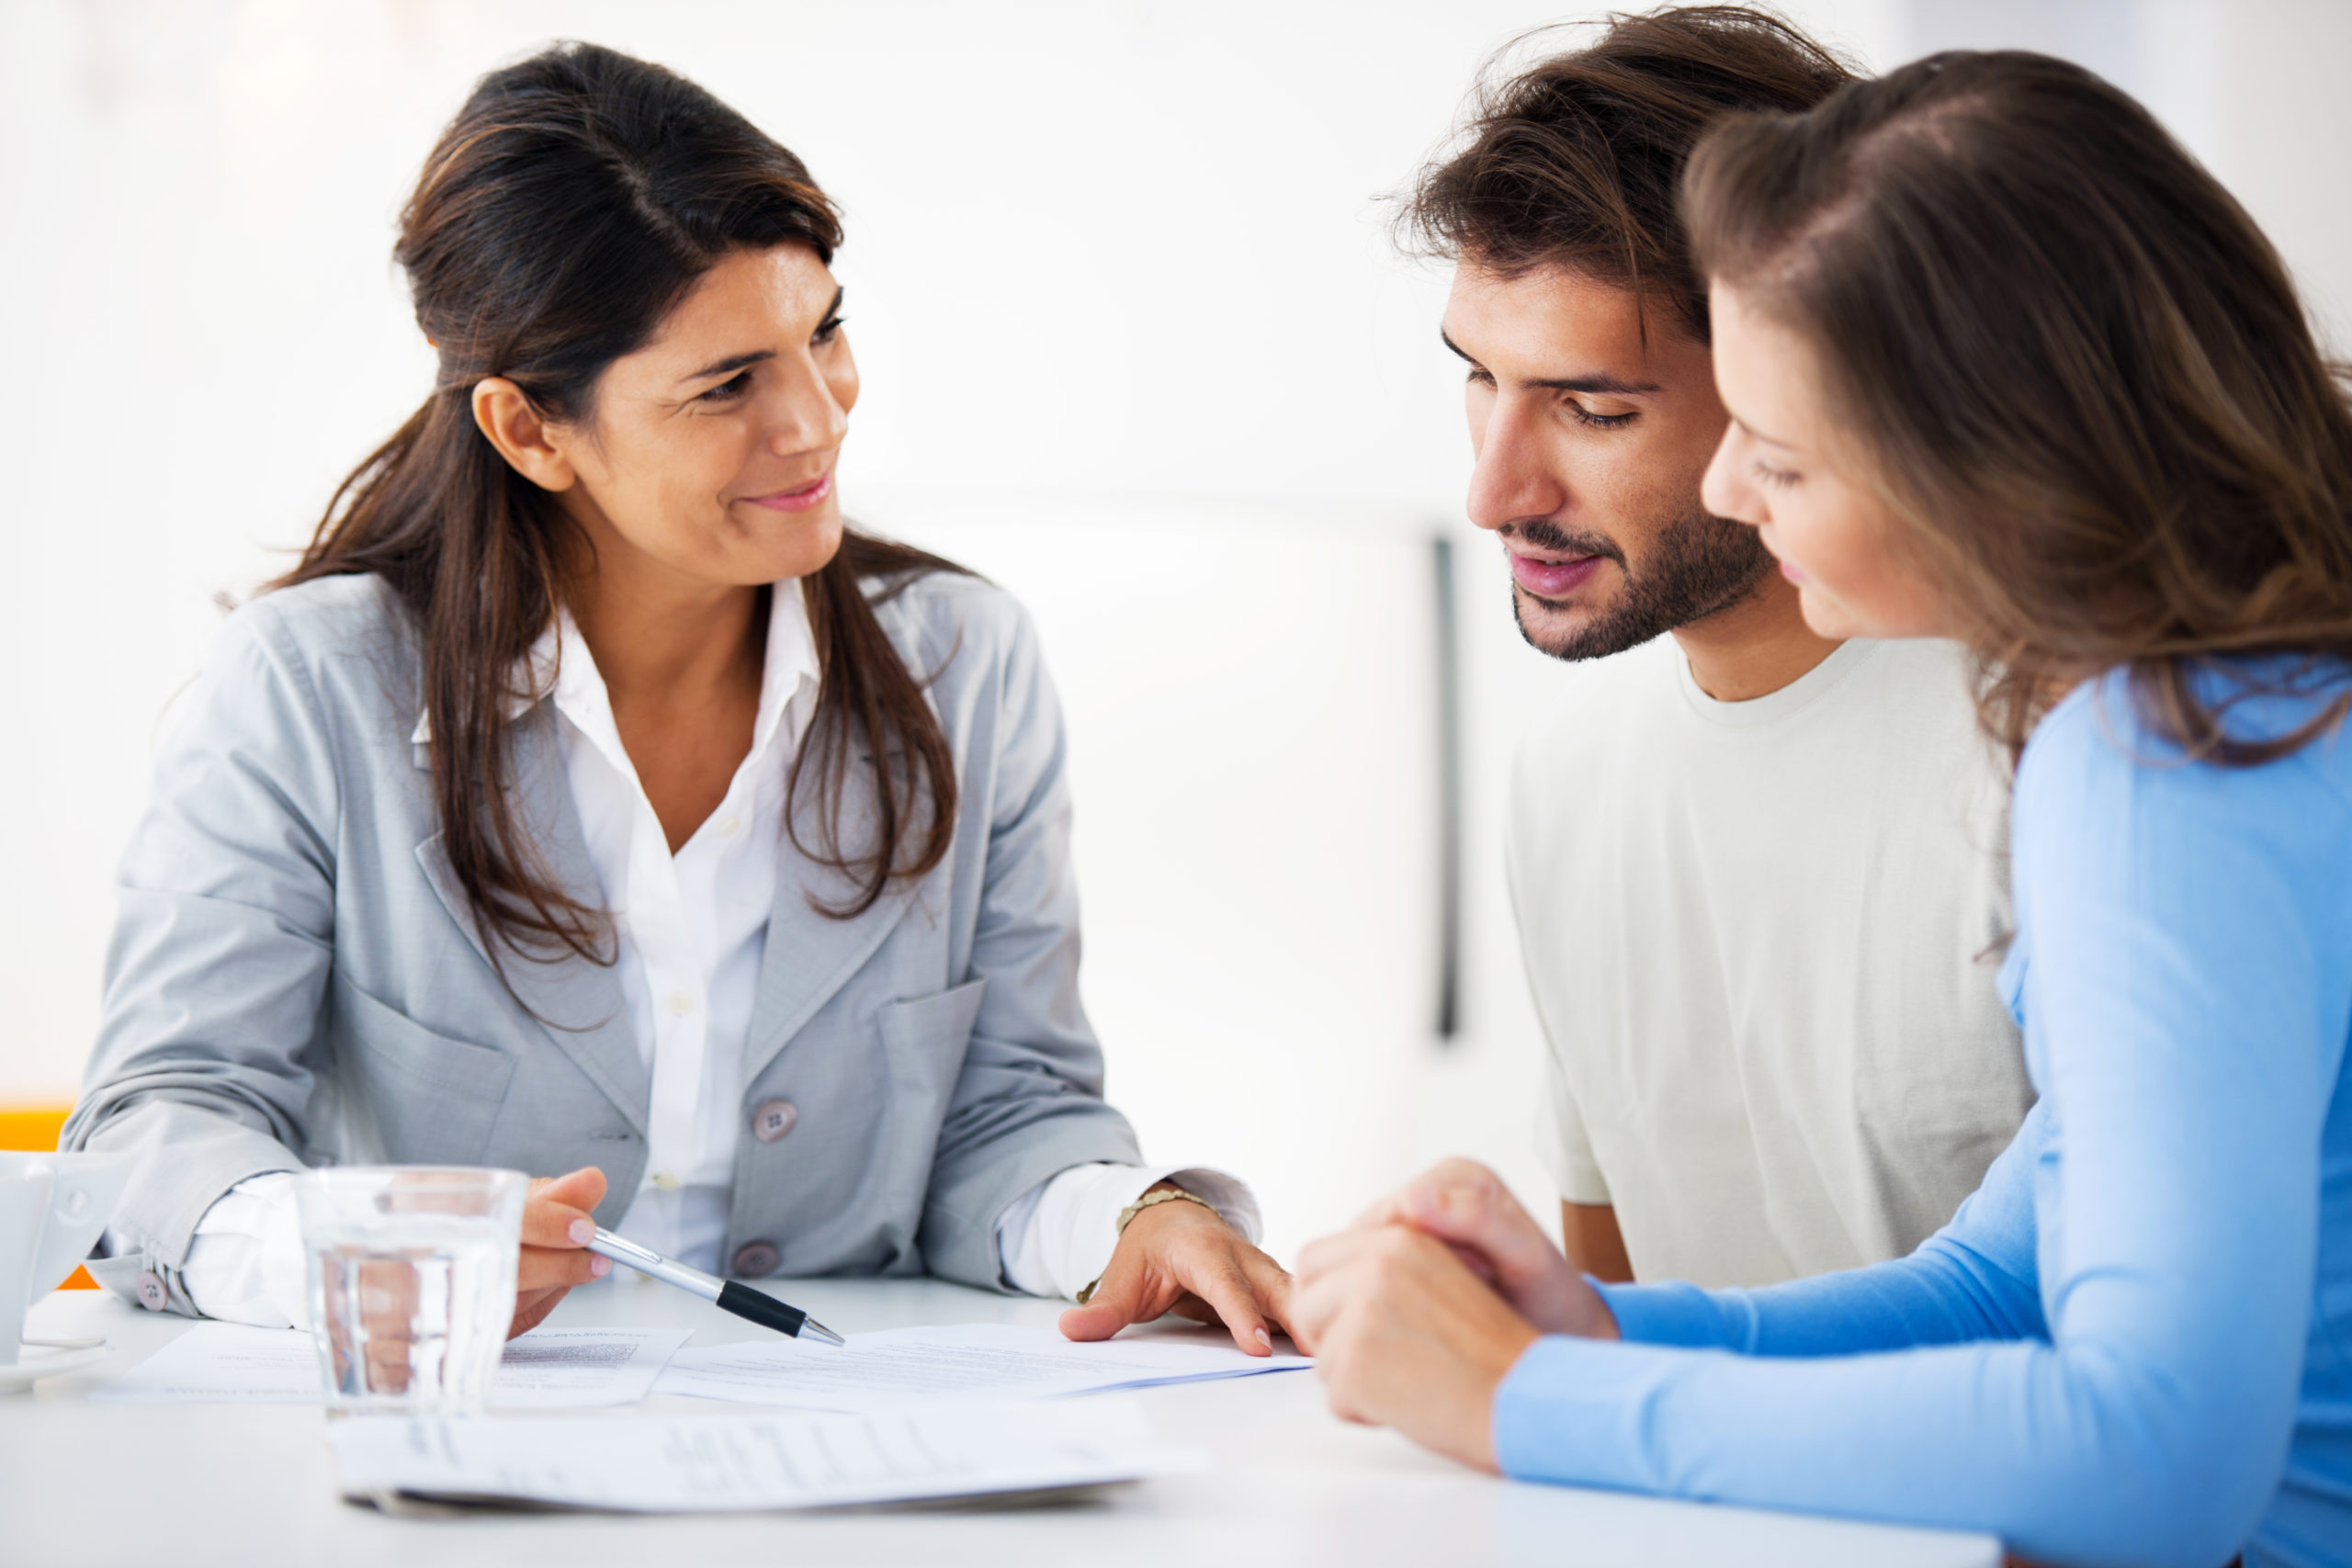 Why Hire an Experienced Personal Injury Lawyer to Handle Your ICBC Claim?